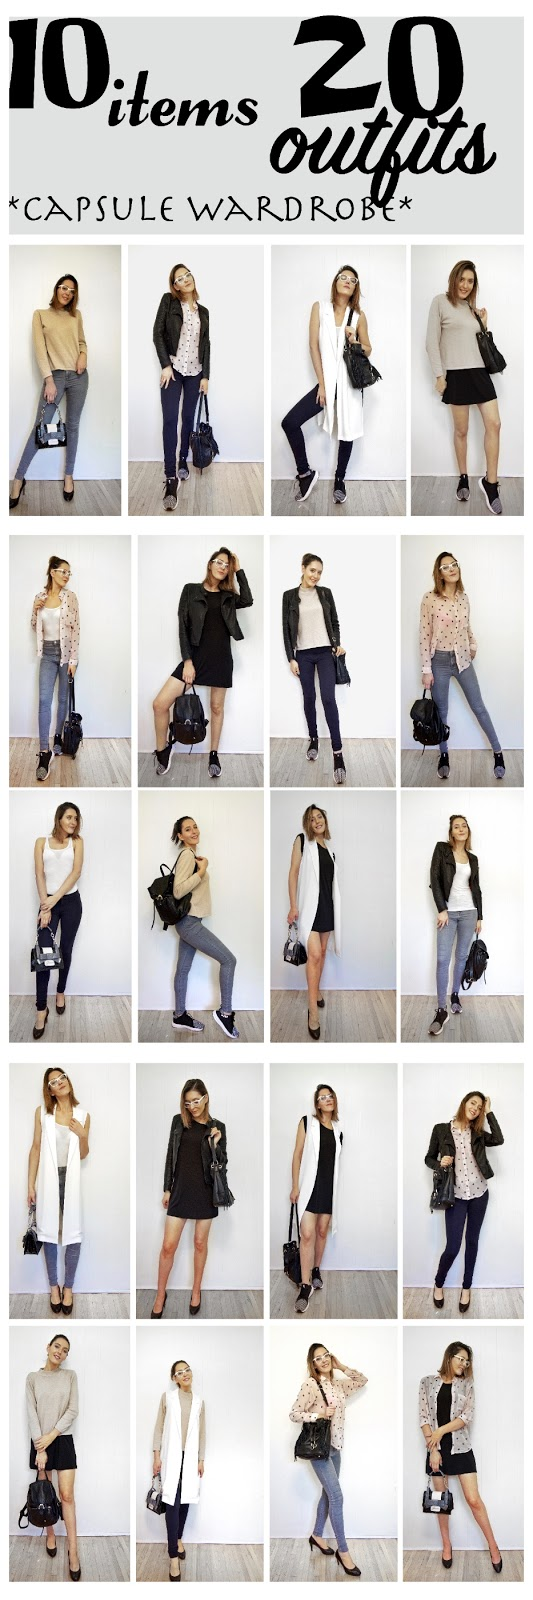 10 items 20 outfits capsule wardrobe